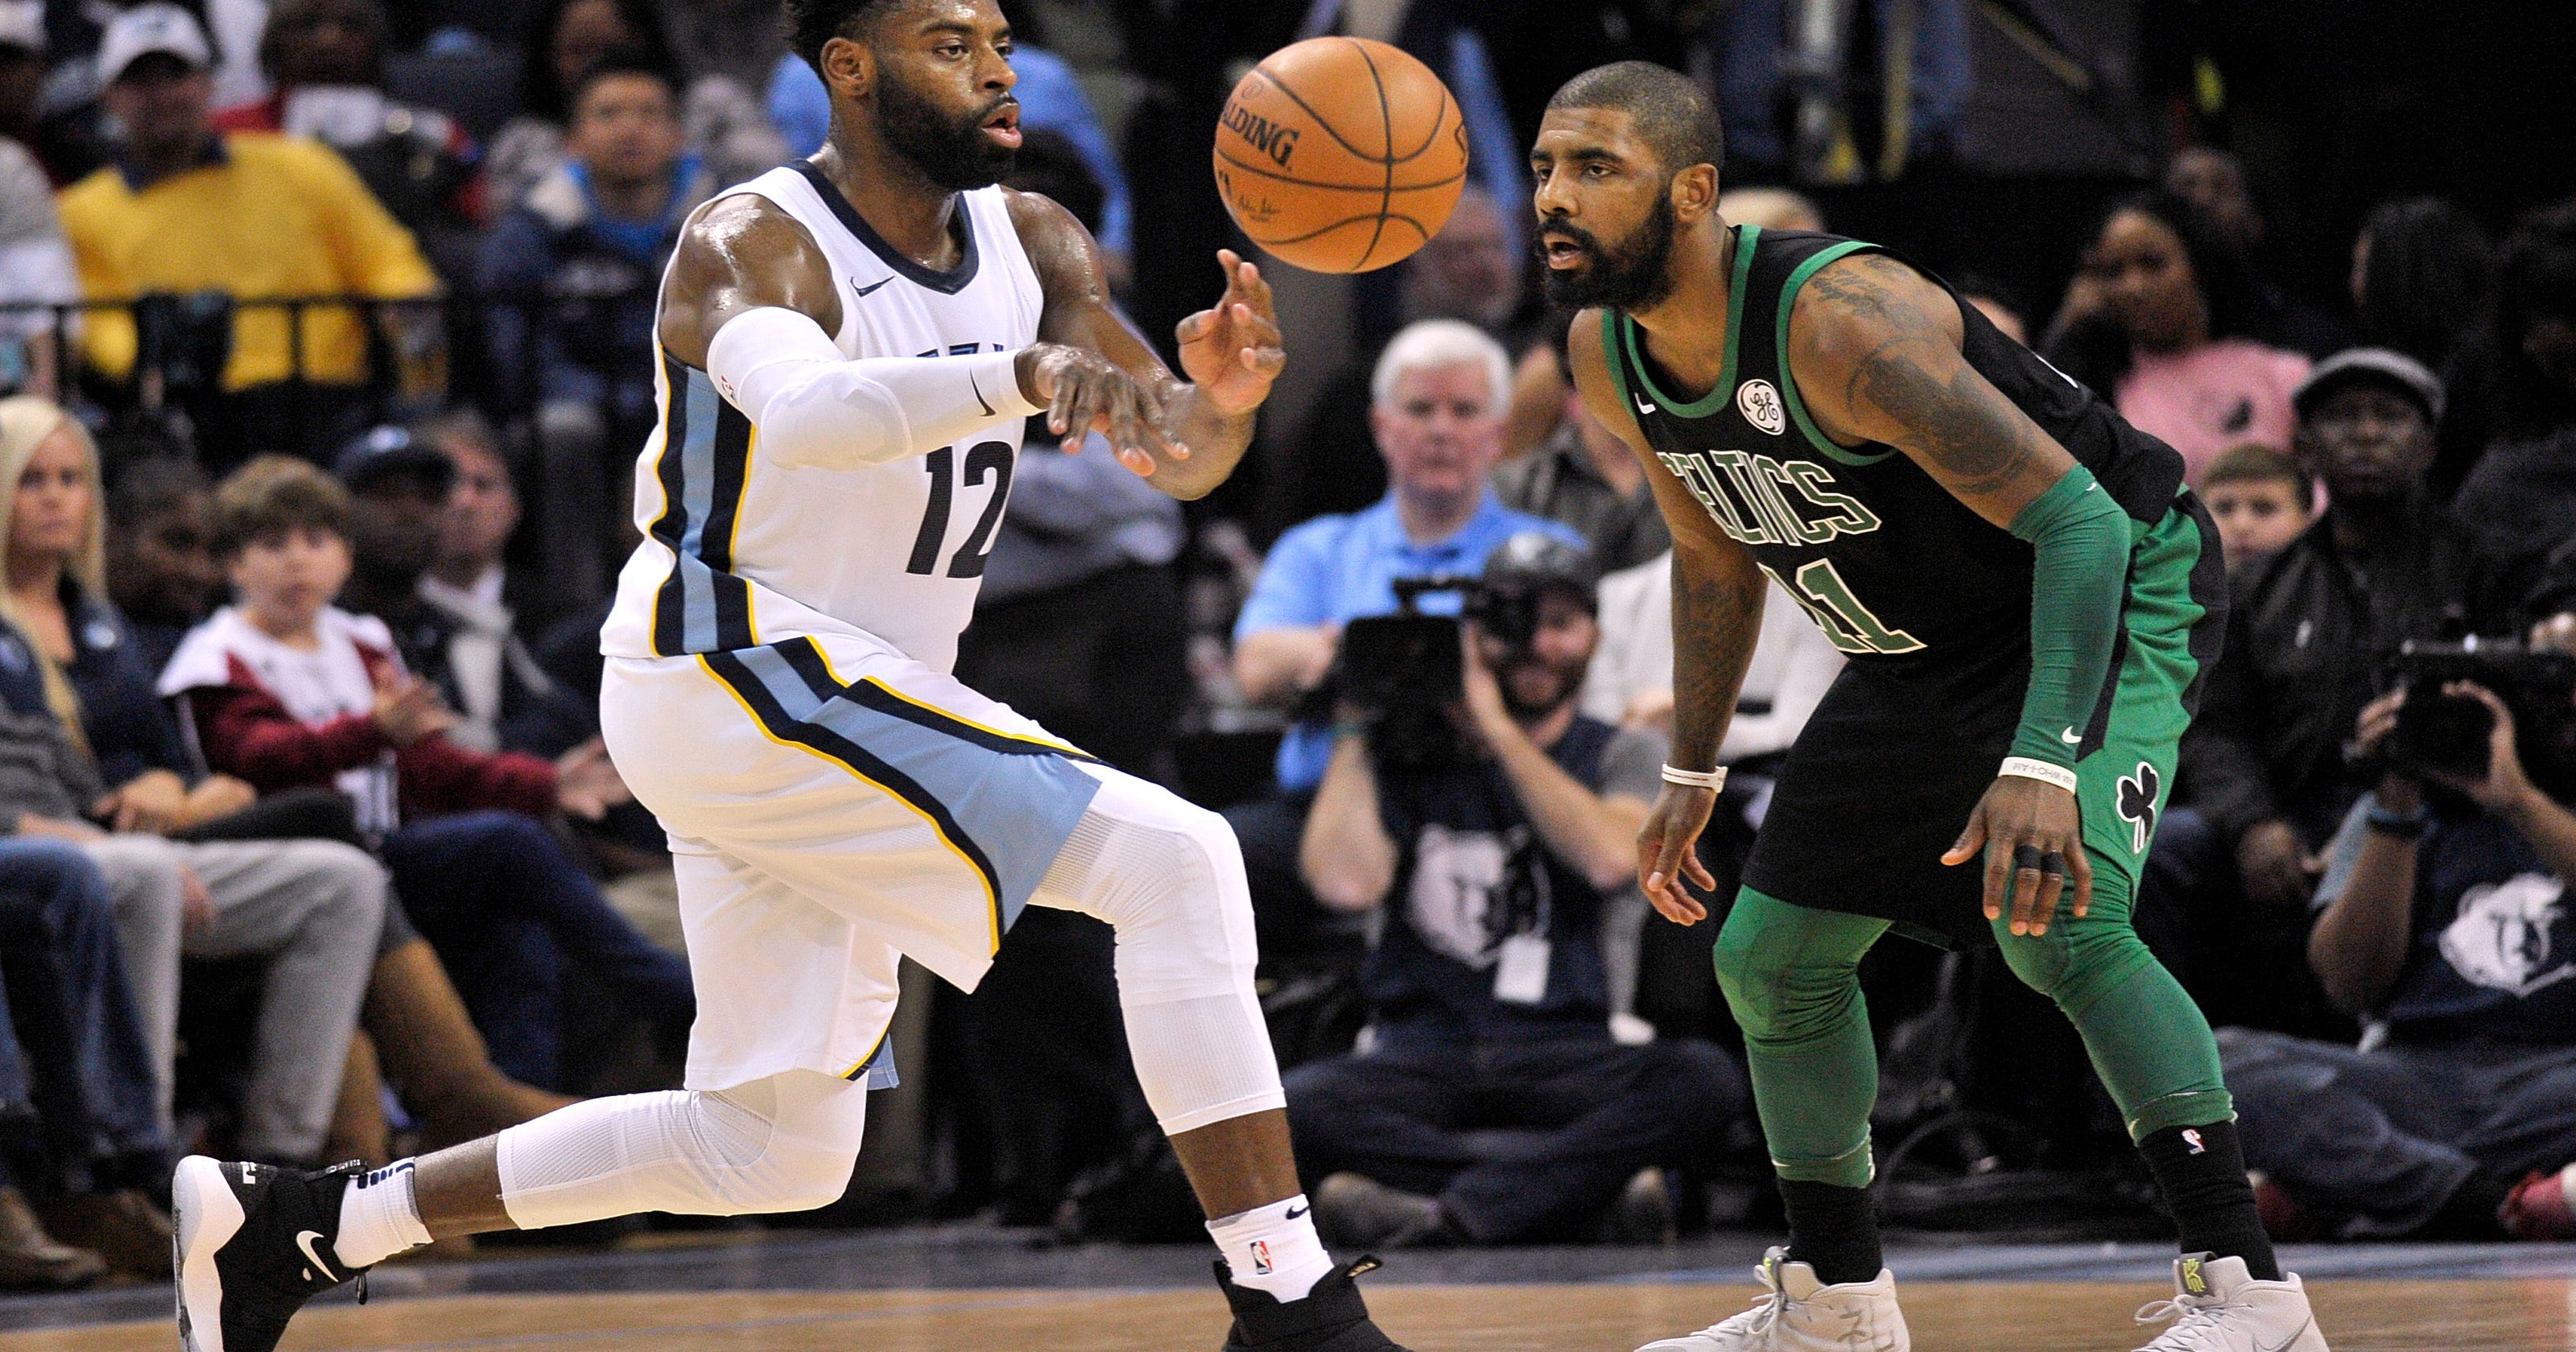 886a96062cfd Kyrie Irving helps Celtics pull away to beat Grizzlies